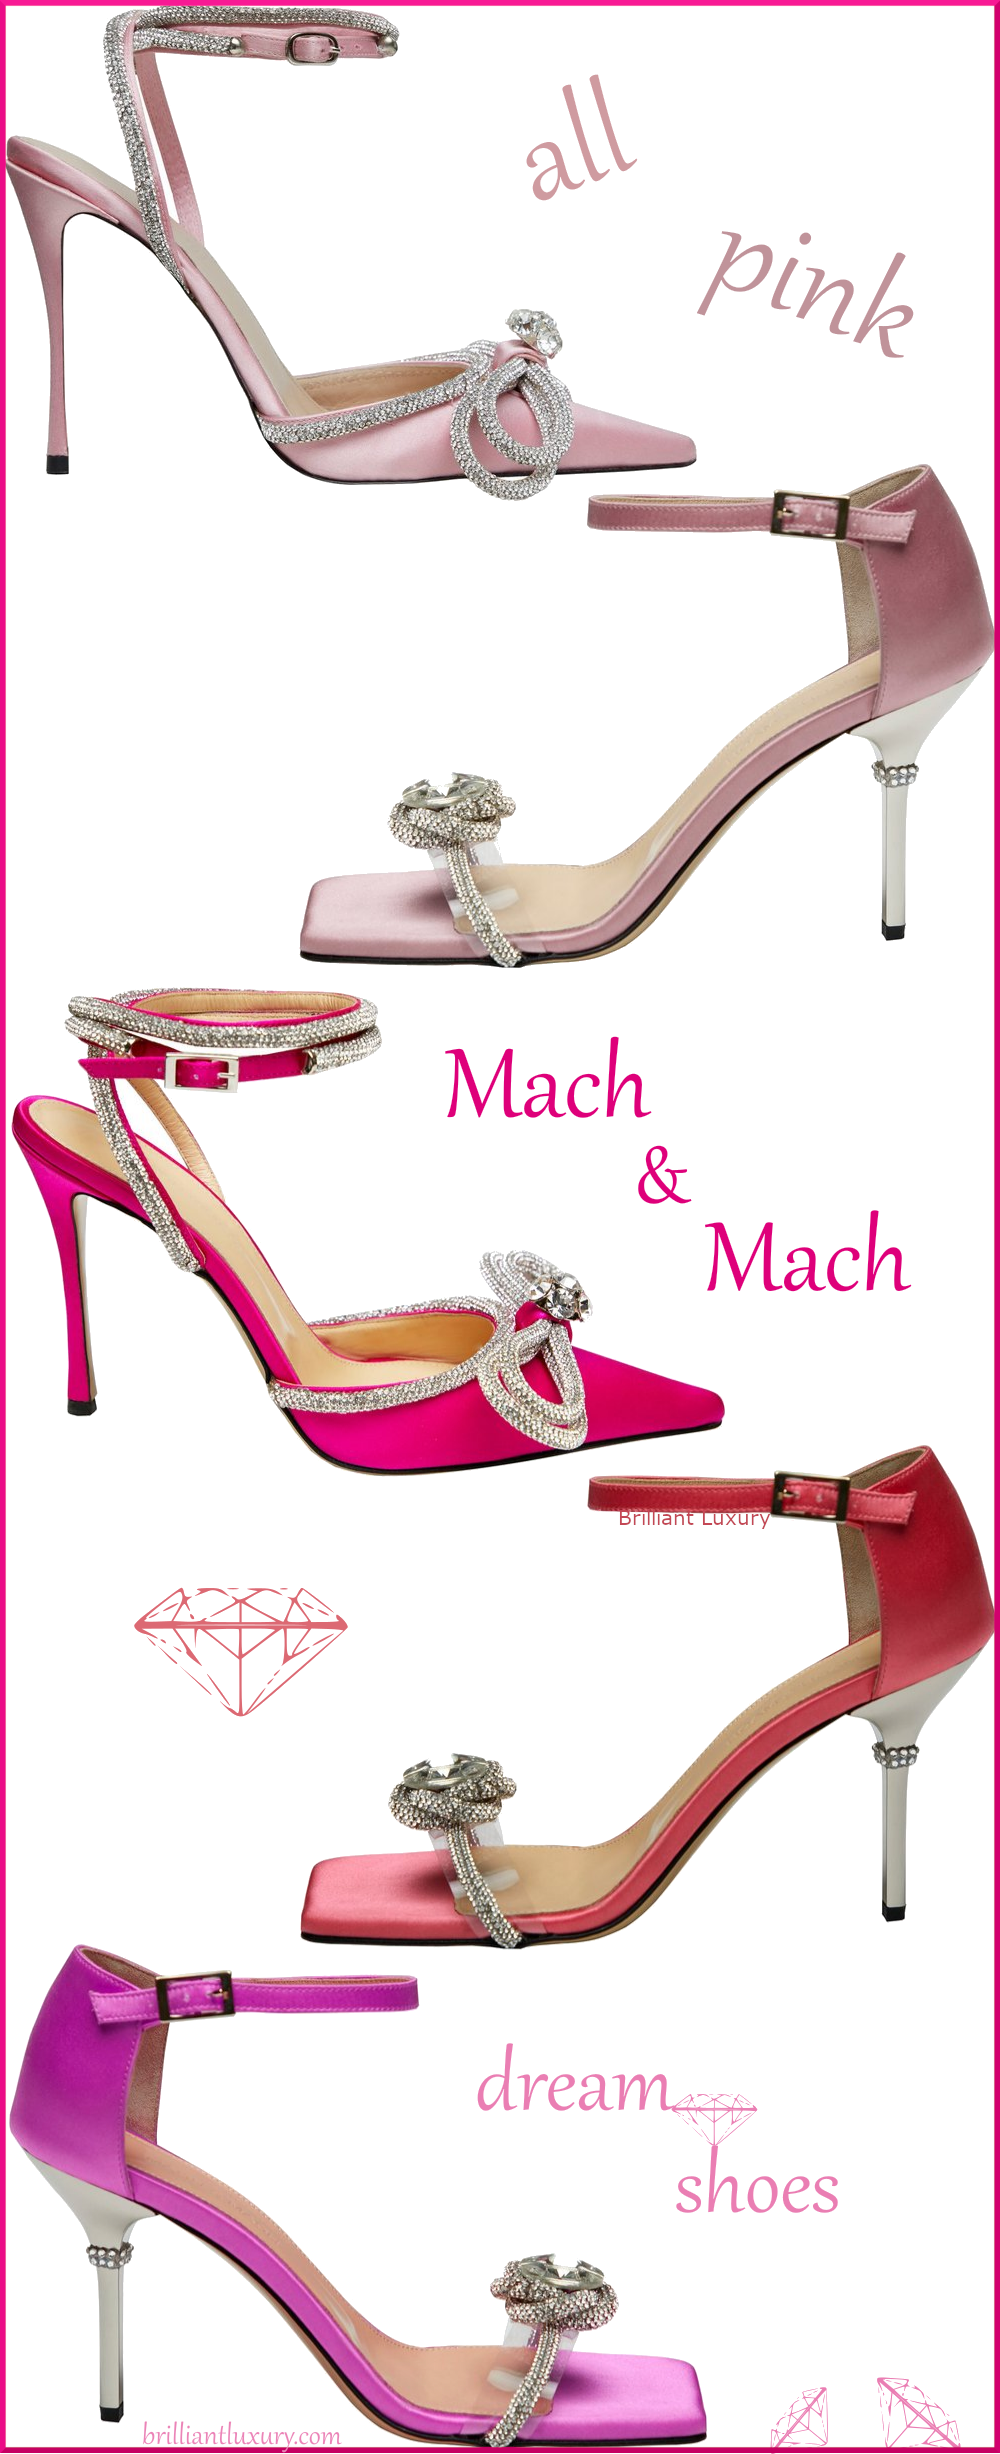 Mach & Mach 5 different pink bejeweled sandals and pumps colorful evening shoes #brilliantluxury